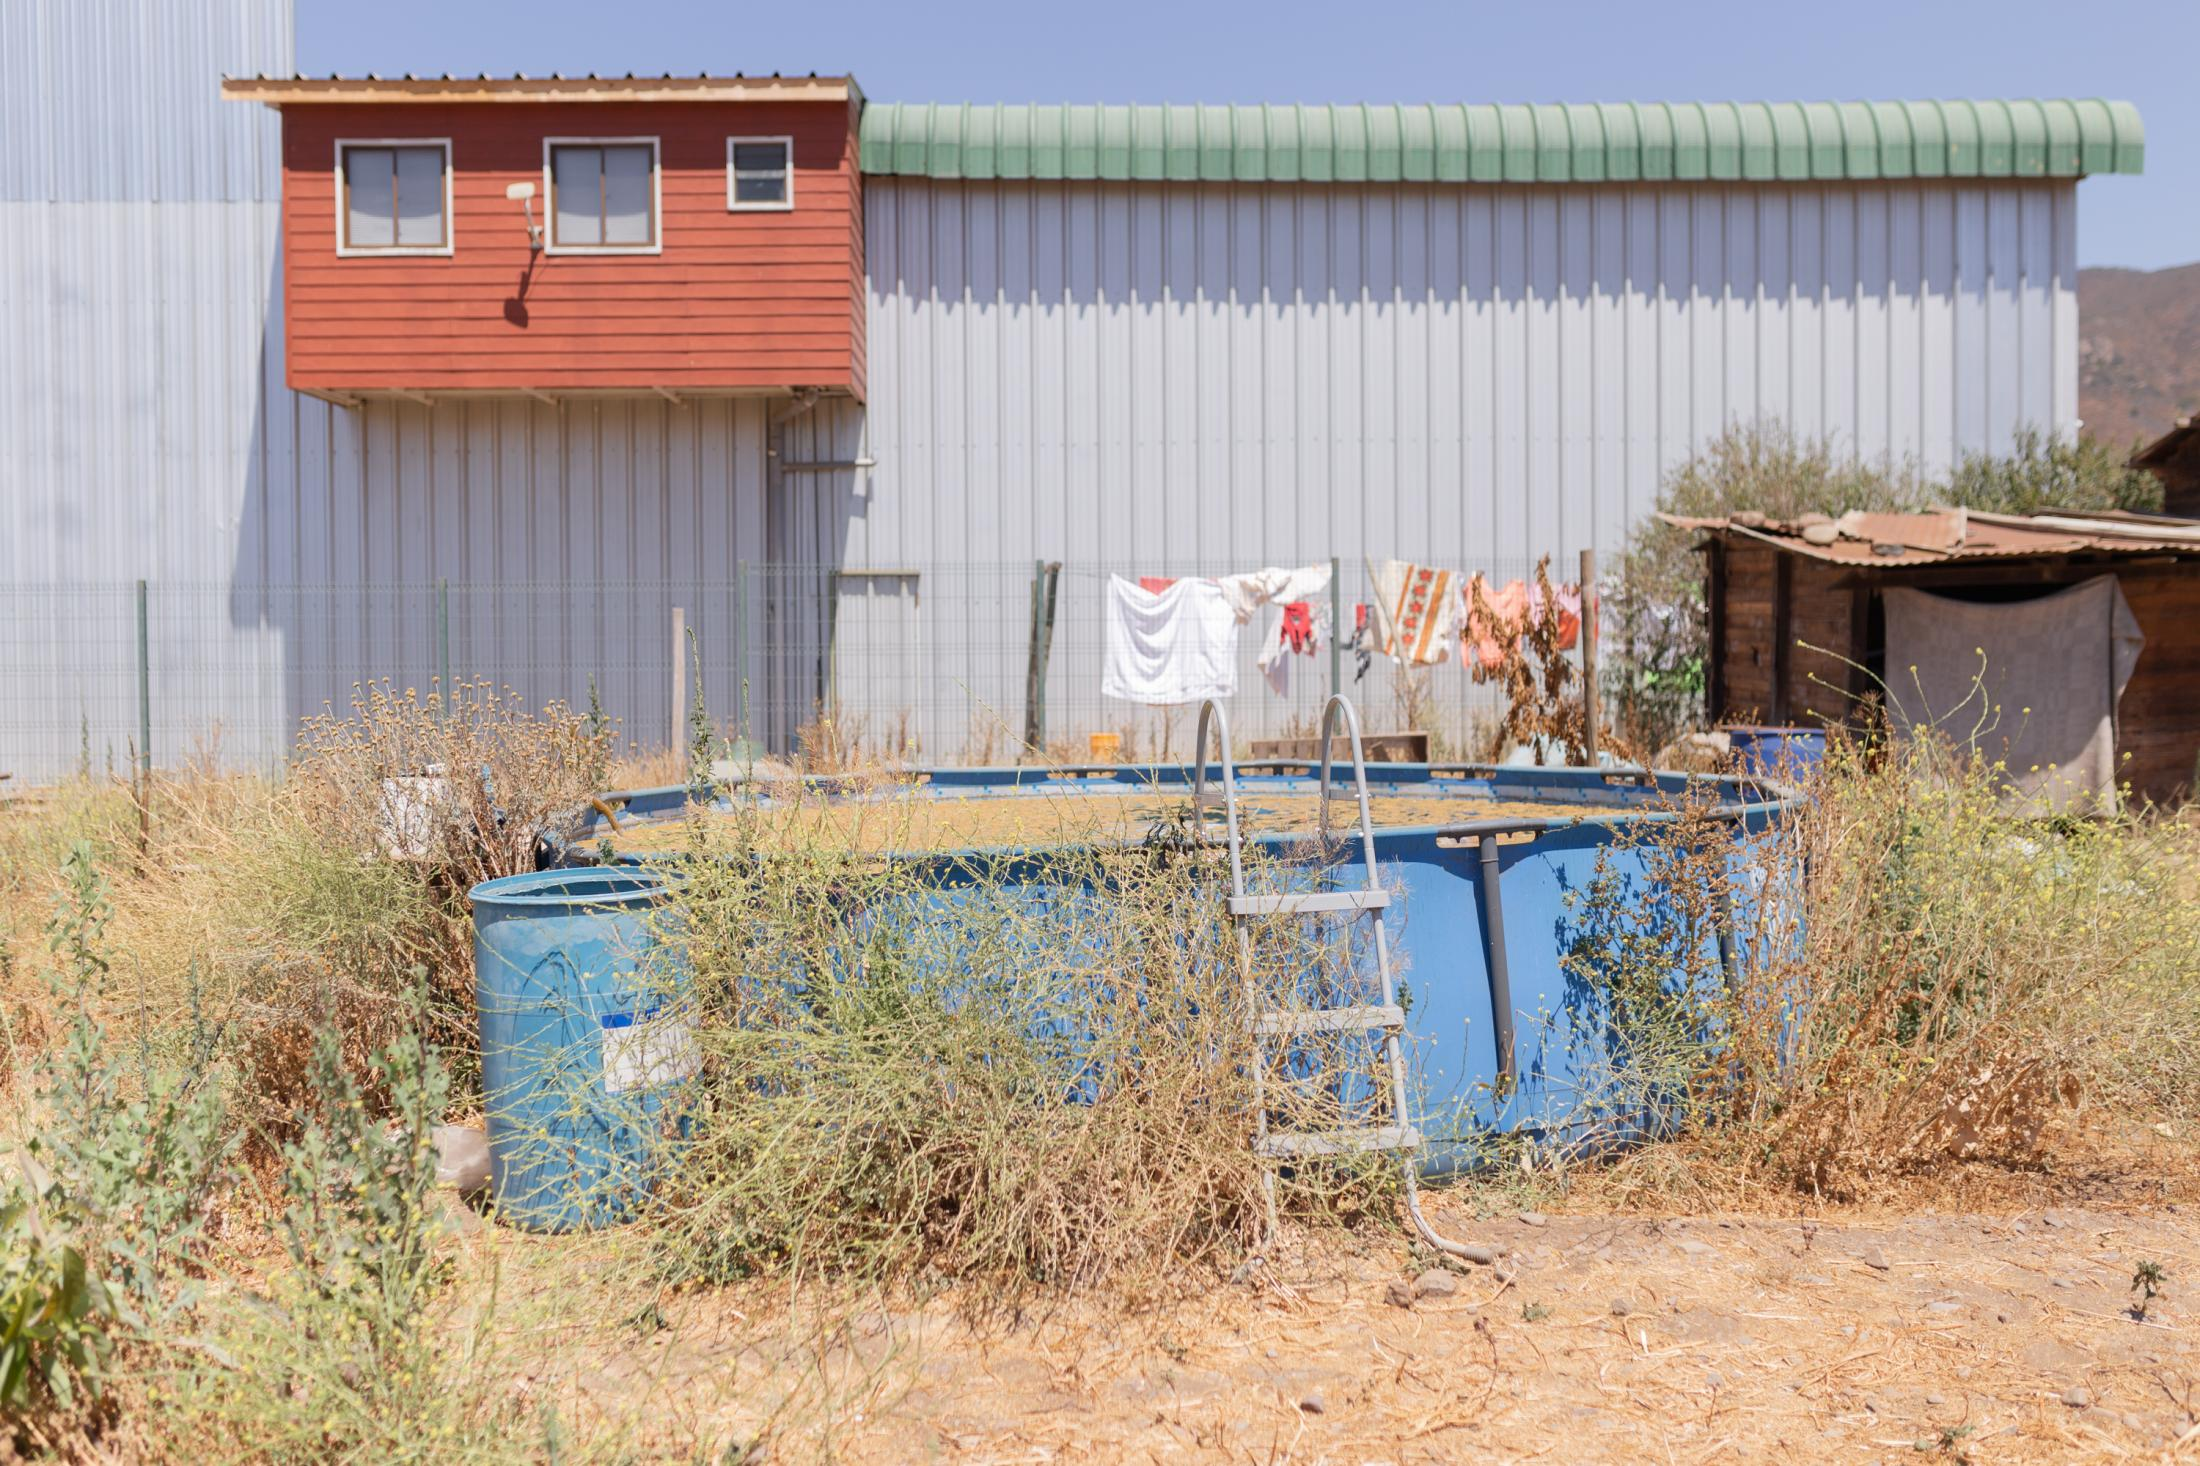 December, 21st, 2020. View of the pool with which Yasmin, resident of the community of La Higuera, Petorca Province, accumulates water. During the summer months, Yasmin can only have 3 hours of water a day for human consumption and for watering her plants. Some communities in the province have been receiving 50 liters of water a day, below the 100 liters necessary for human consumption recommended by the World Health Organisation.